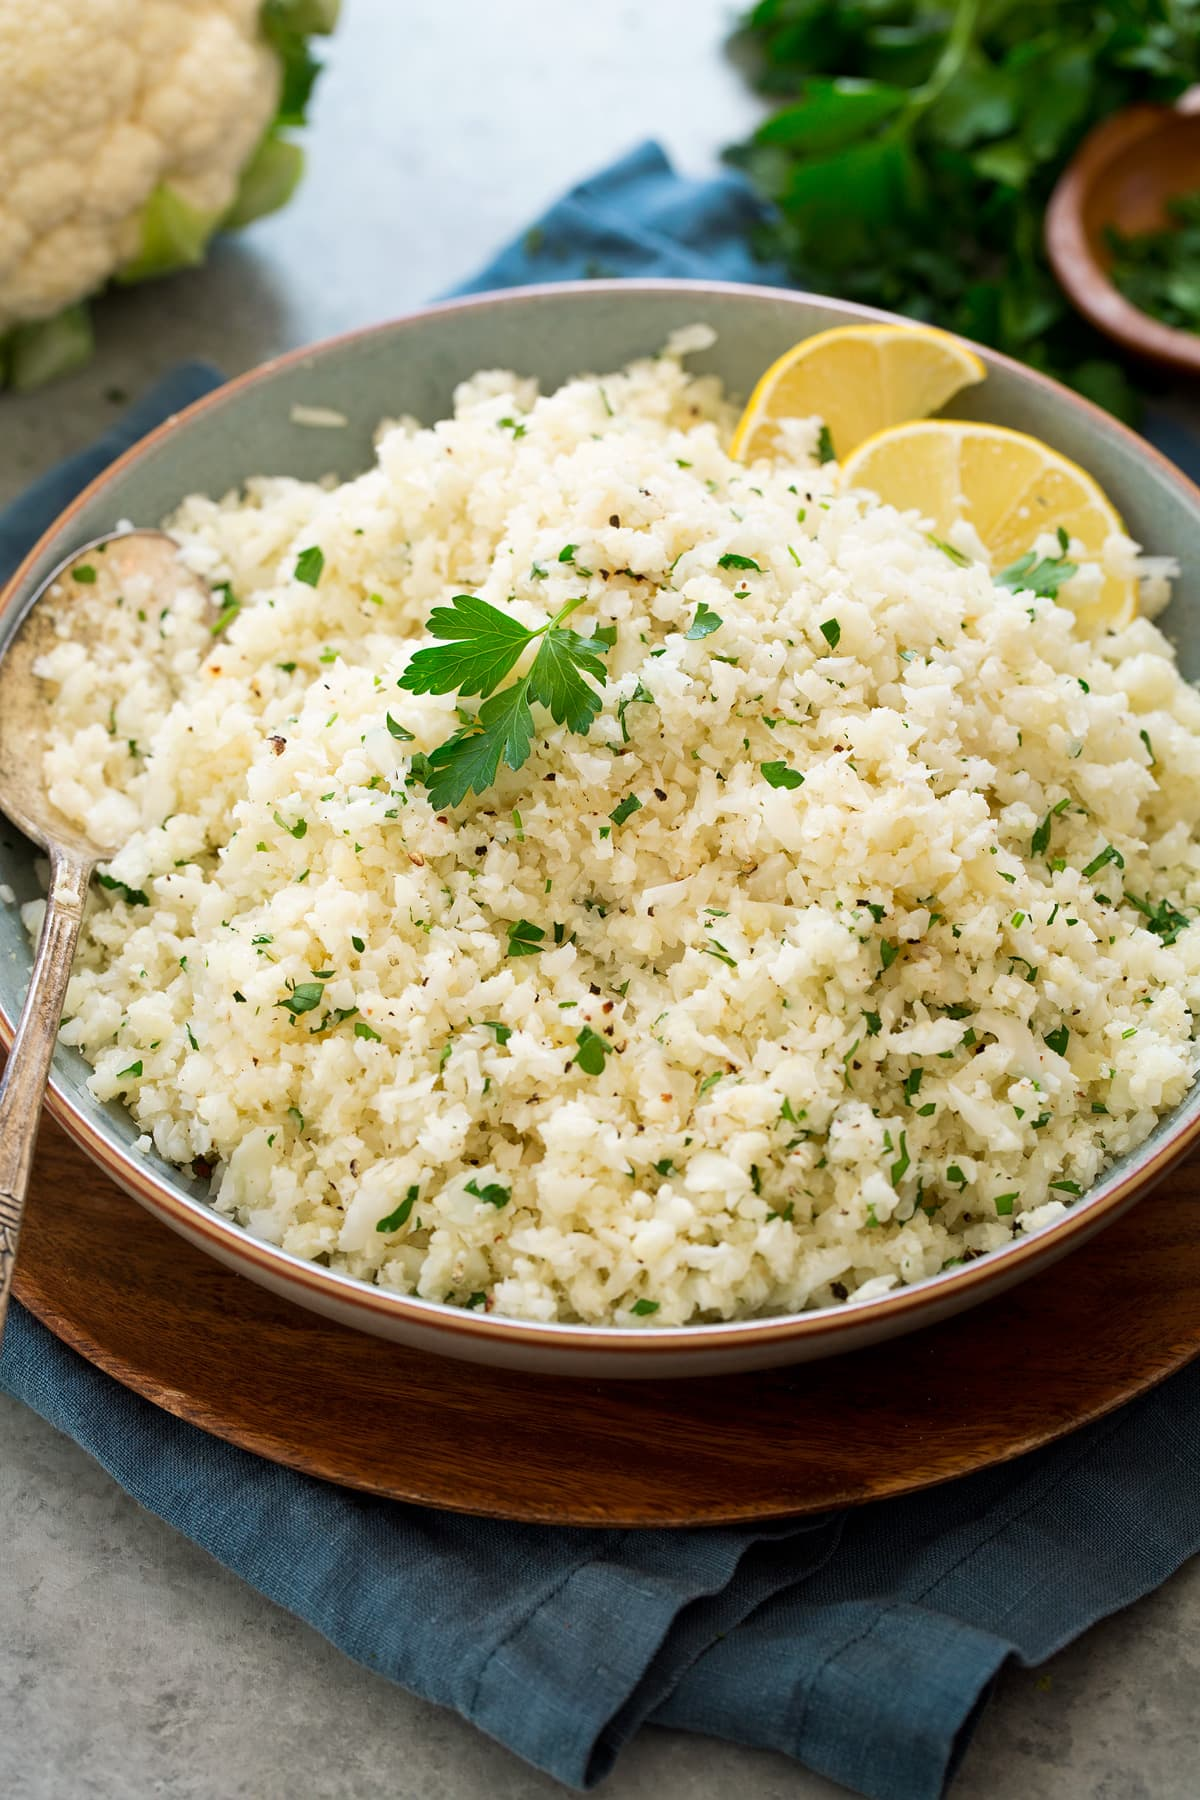 Photo of cauliflower rice shown from the side in a serving bowl.